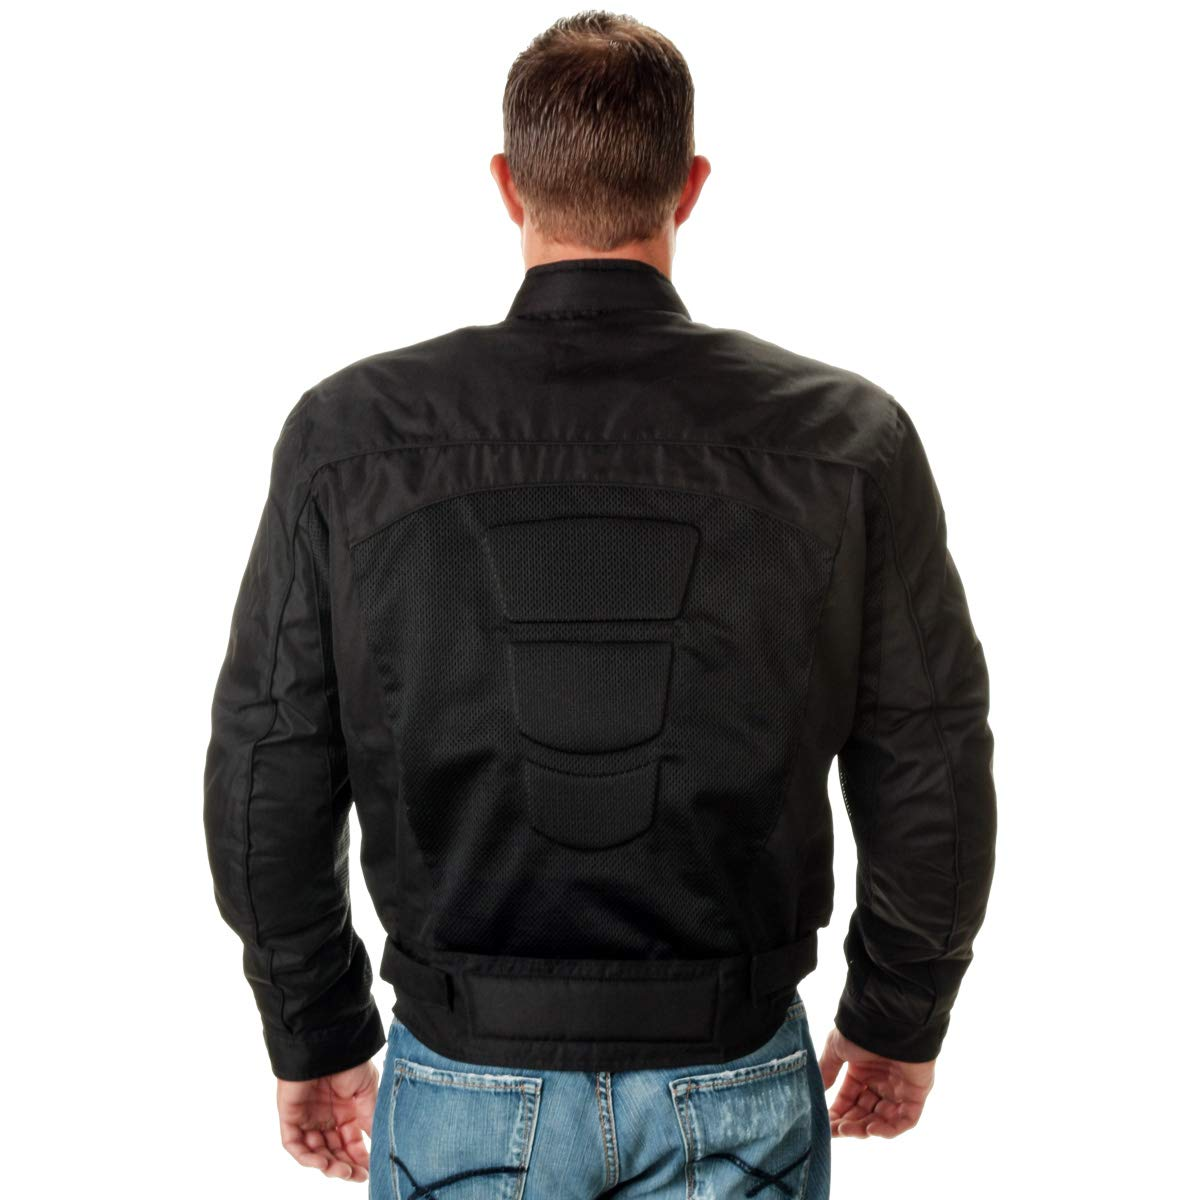 Xelement CF380 Devious Mens Black Mesh Jacket with X-Armor CE Protection - 2X-Large